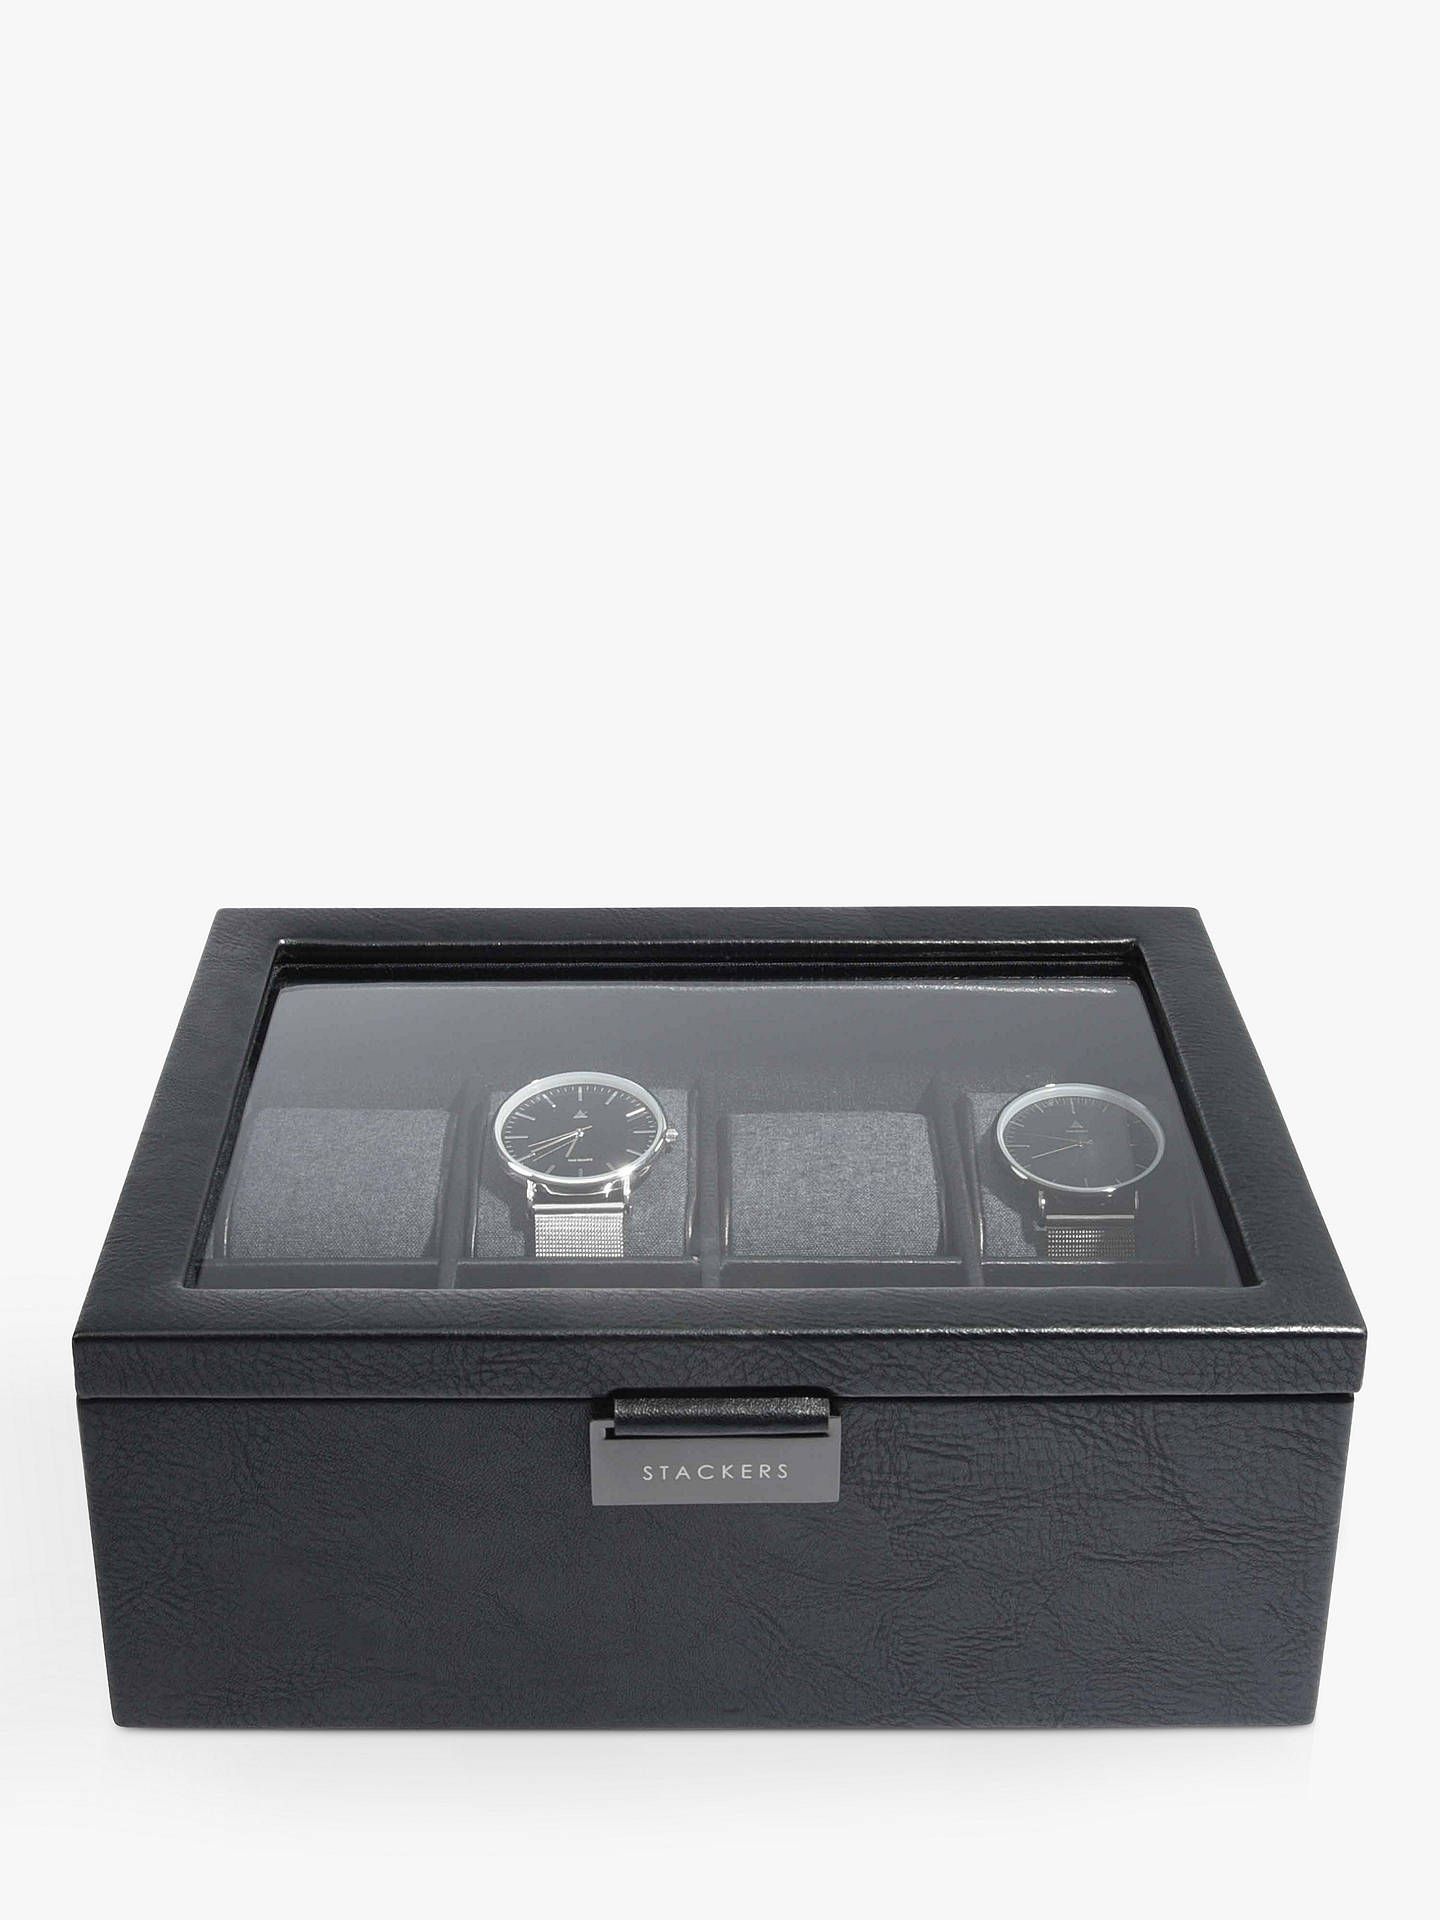 BuyStackers 8 Piece Glass Watch Box, Black Online at johnlewis.com